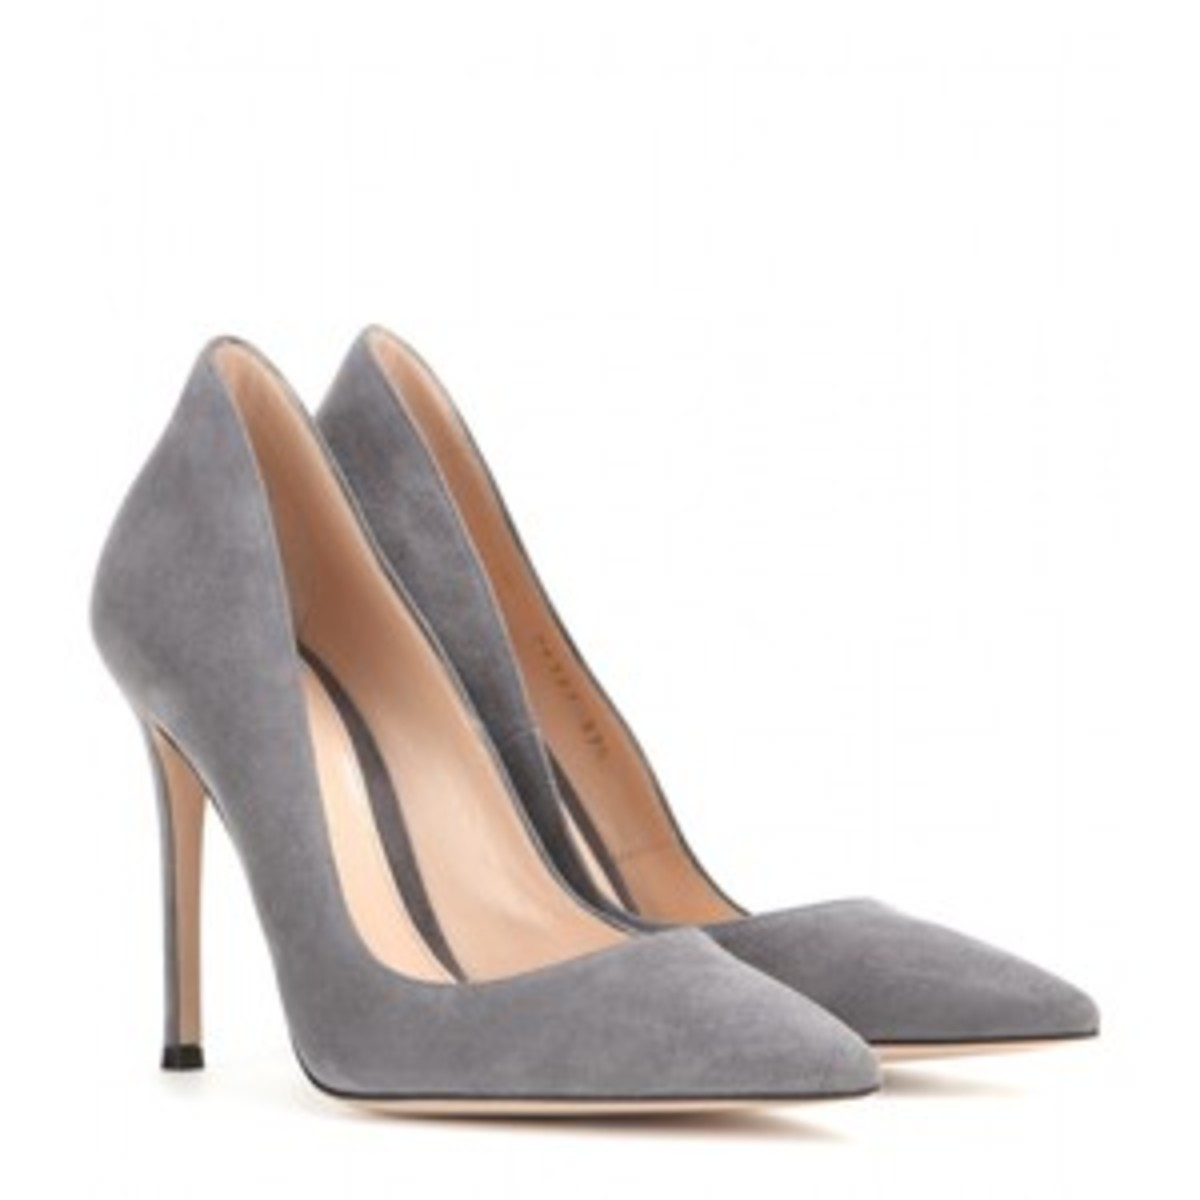 The Classic Pump Shoe Always On Trend